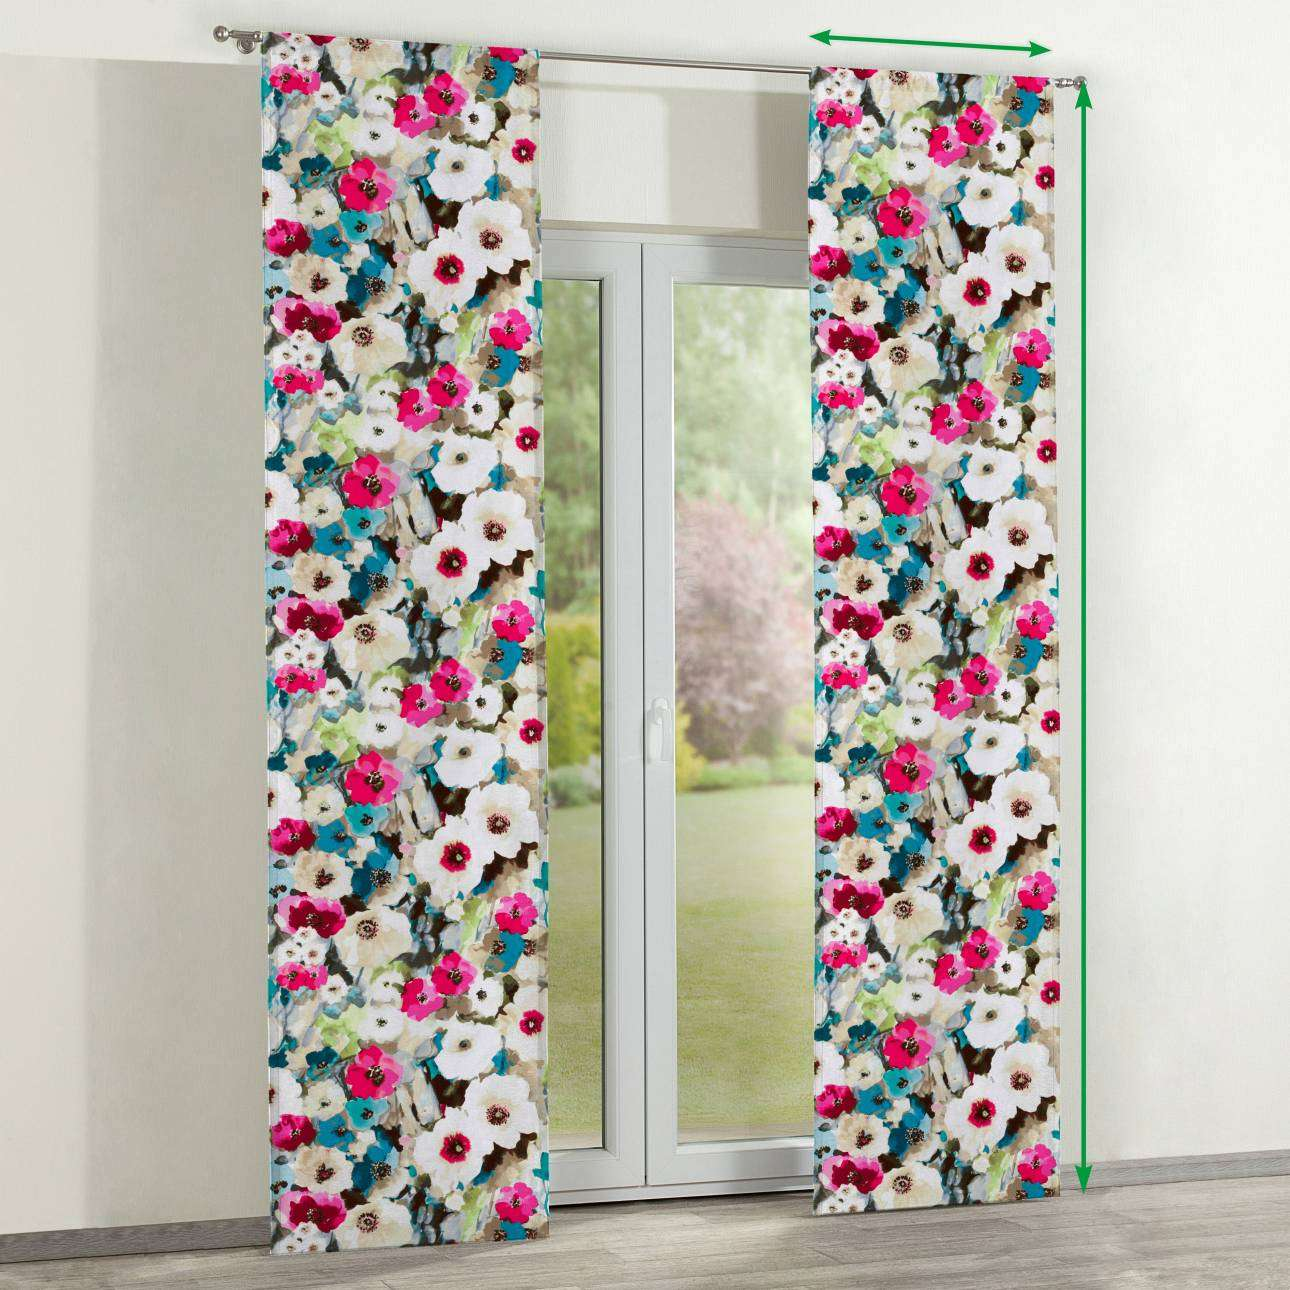 Slot panel curtains – Set of 2 in collection Monet, fabric: 140-08